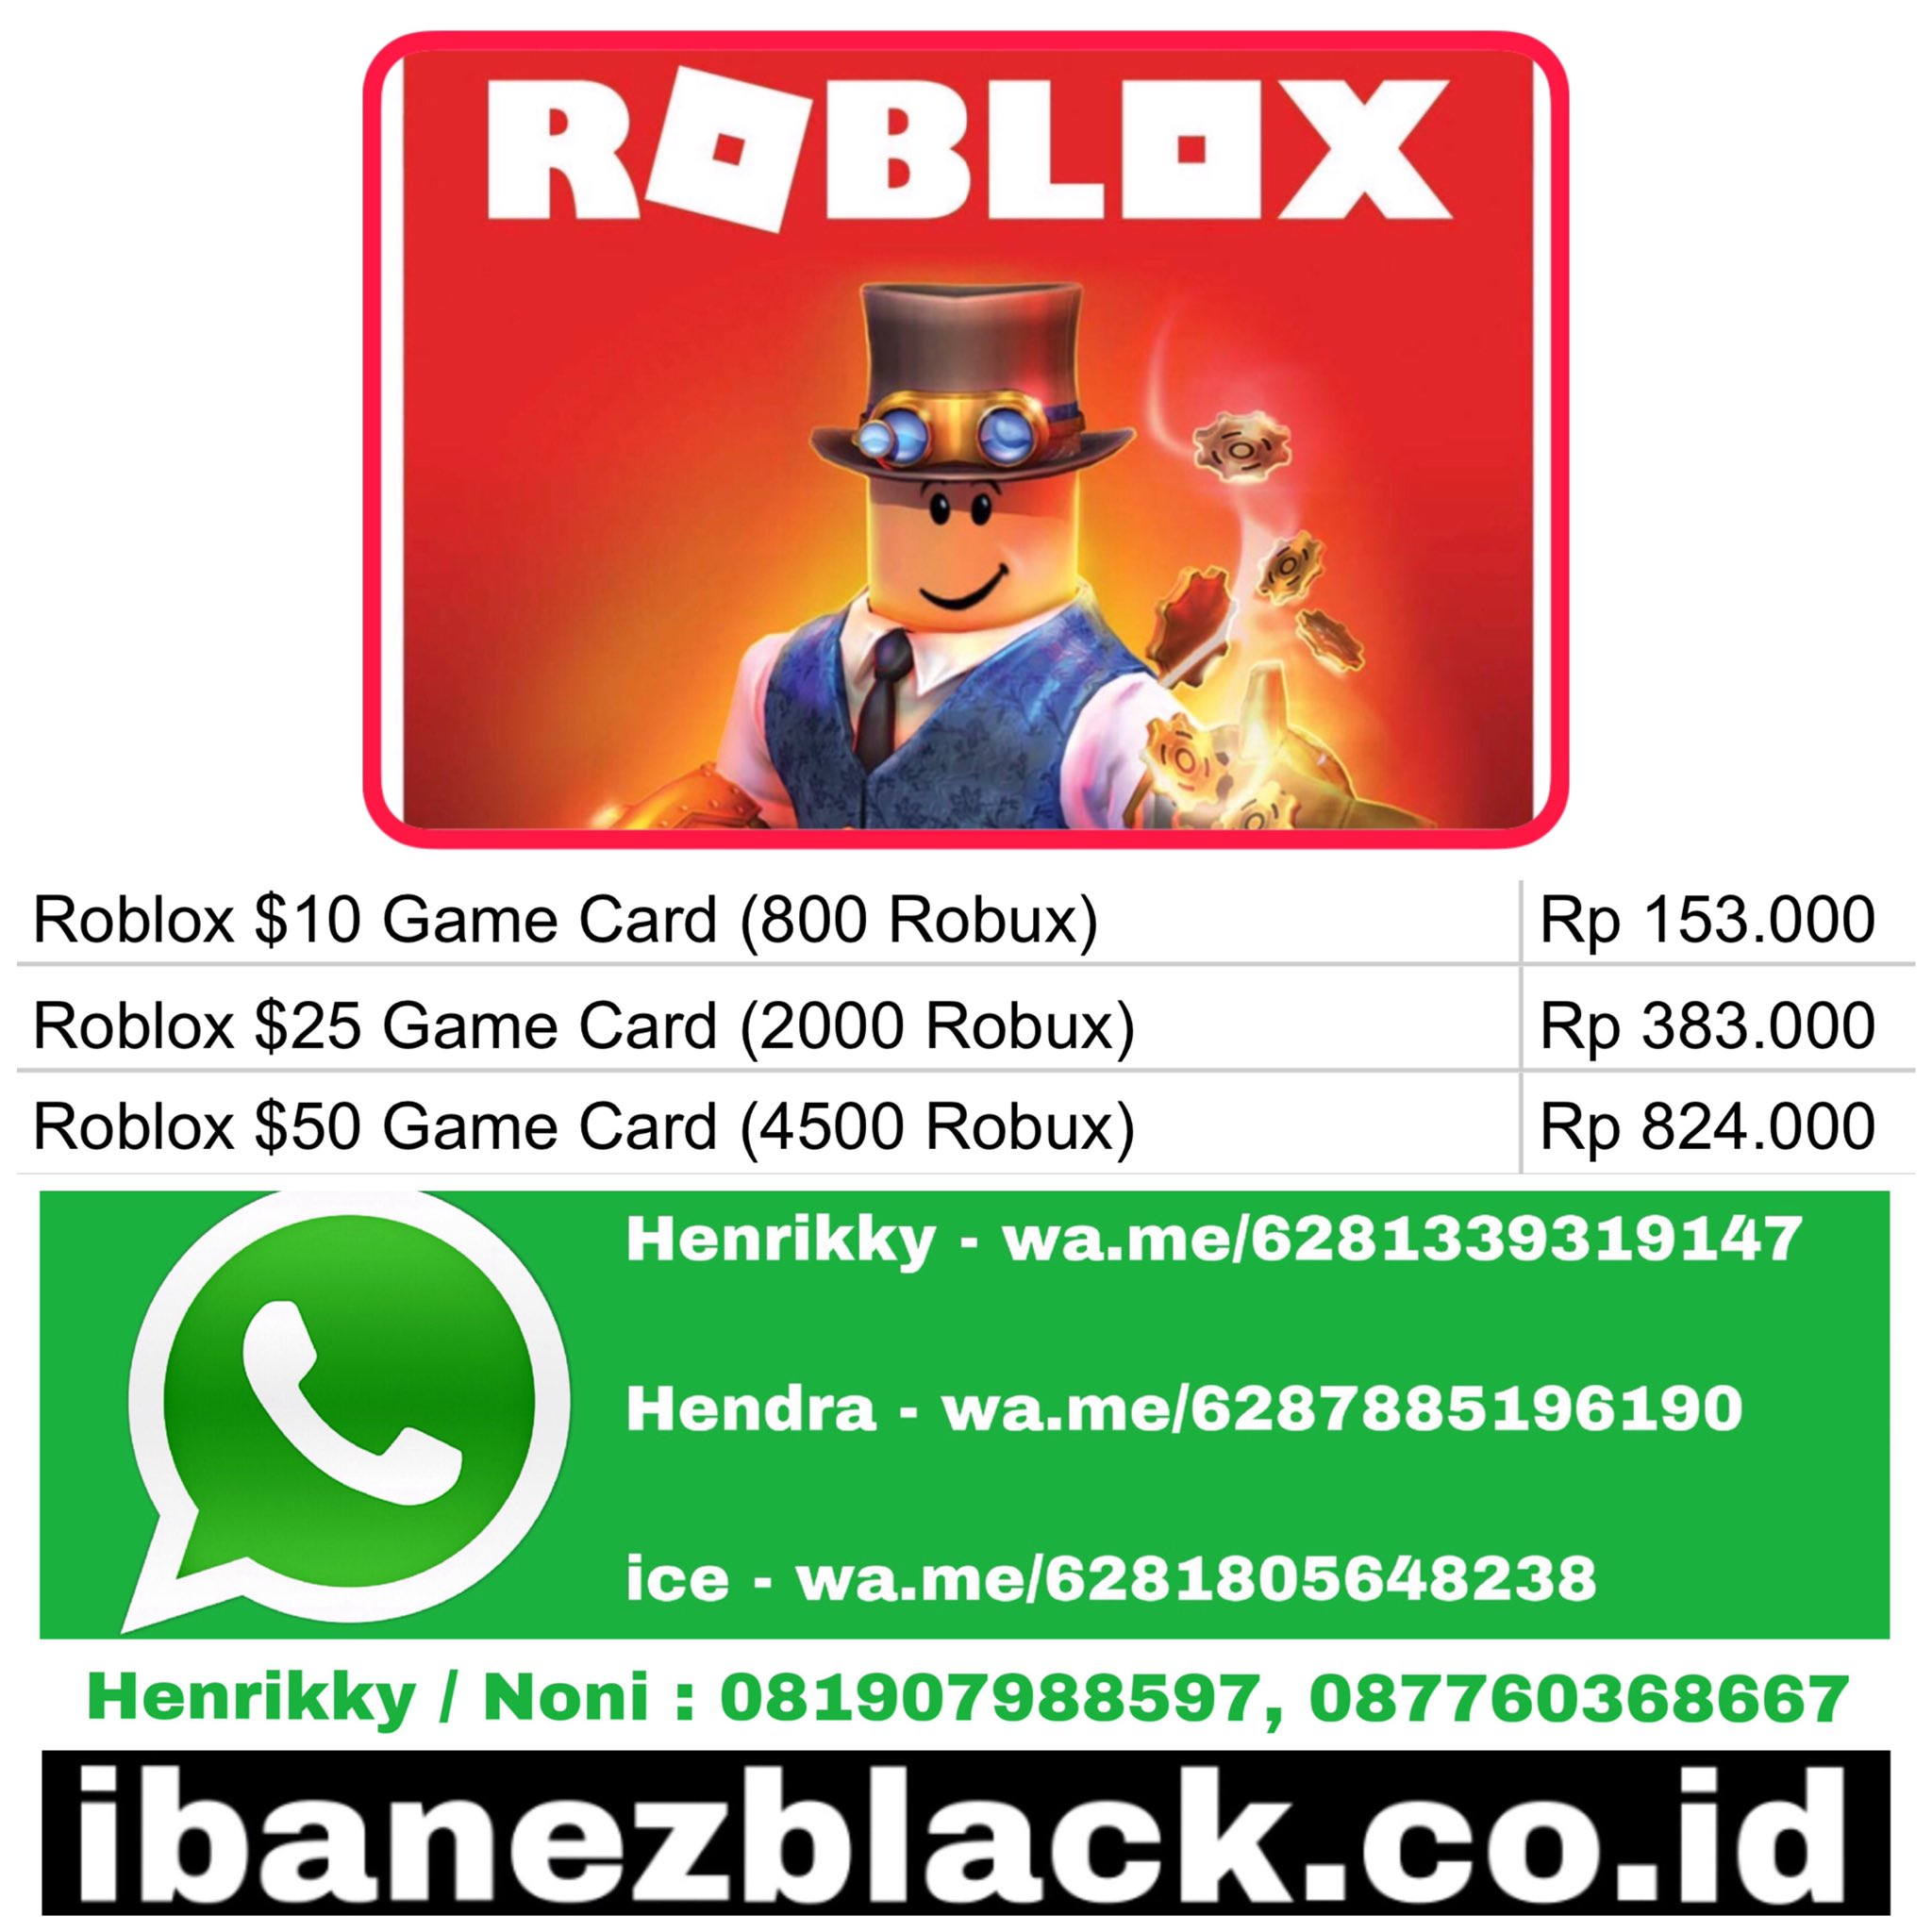 2000 Robux Gift Card Ibanezblack Com On Twitter Roblox Game Card Robux Https T Co S6uvxtj9zv